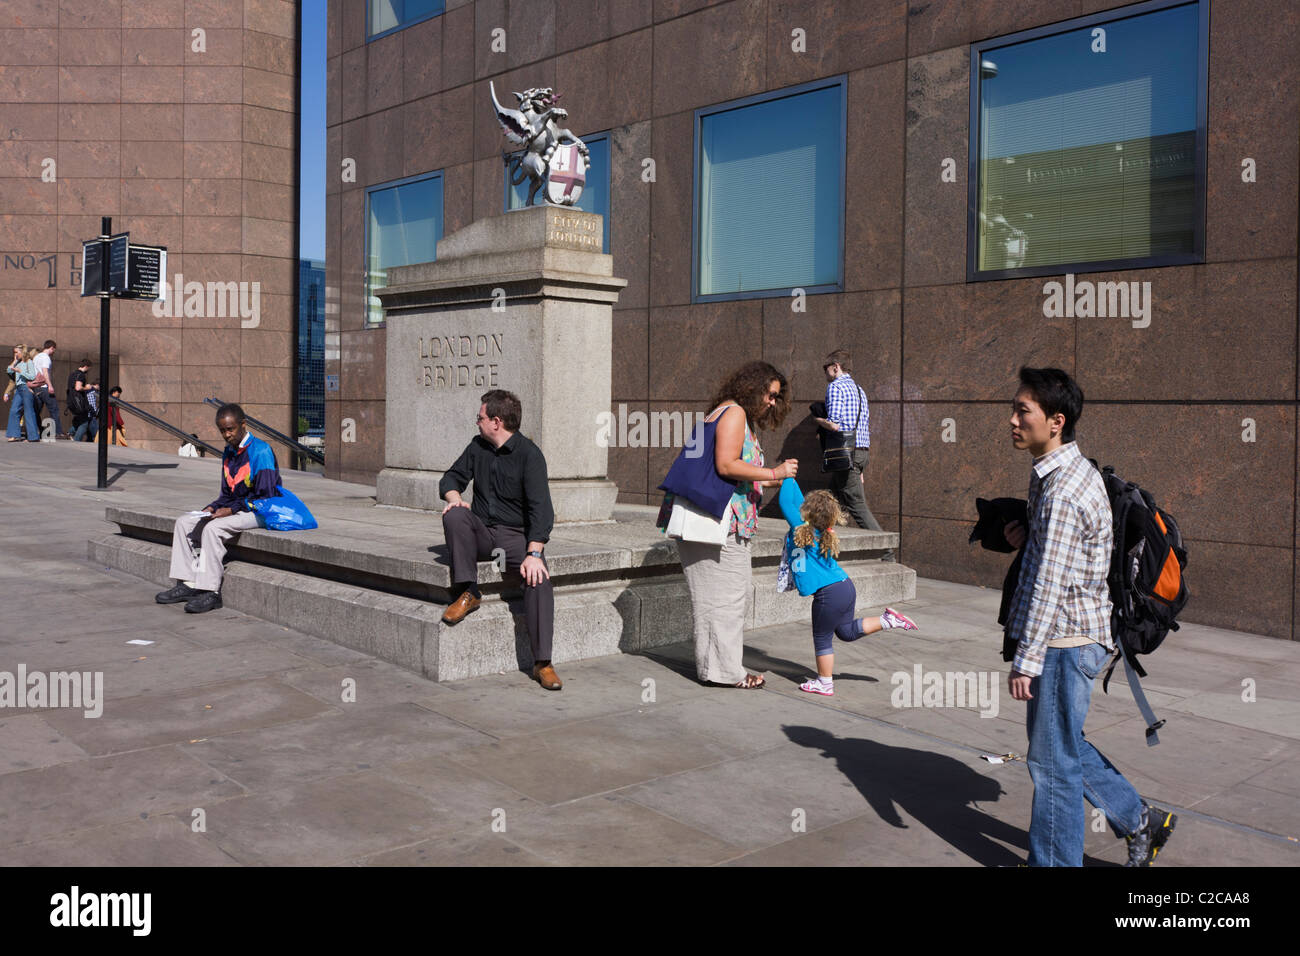 Pedestrians and passes-by at the City of London boundary griffin on London Bridge. - Stock Image